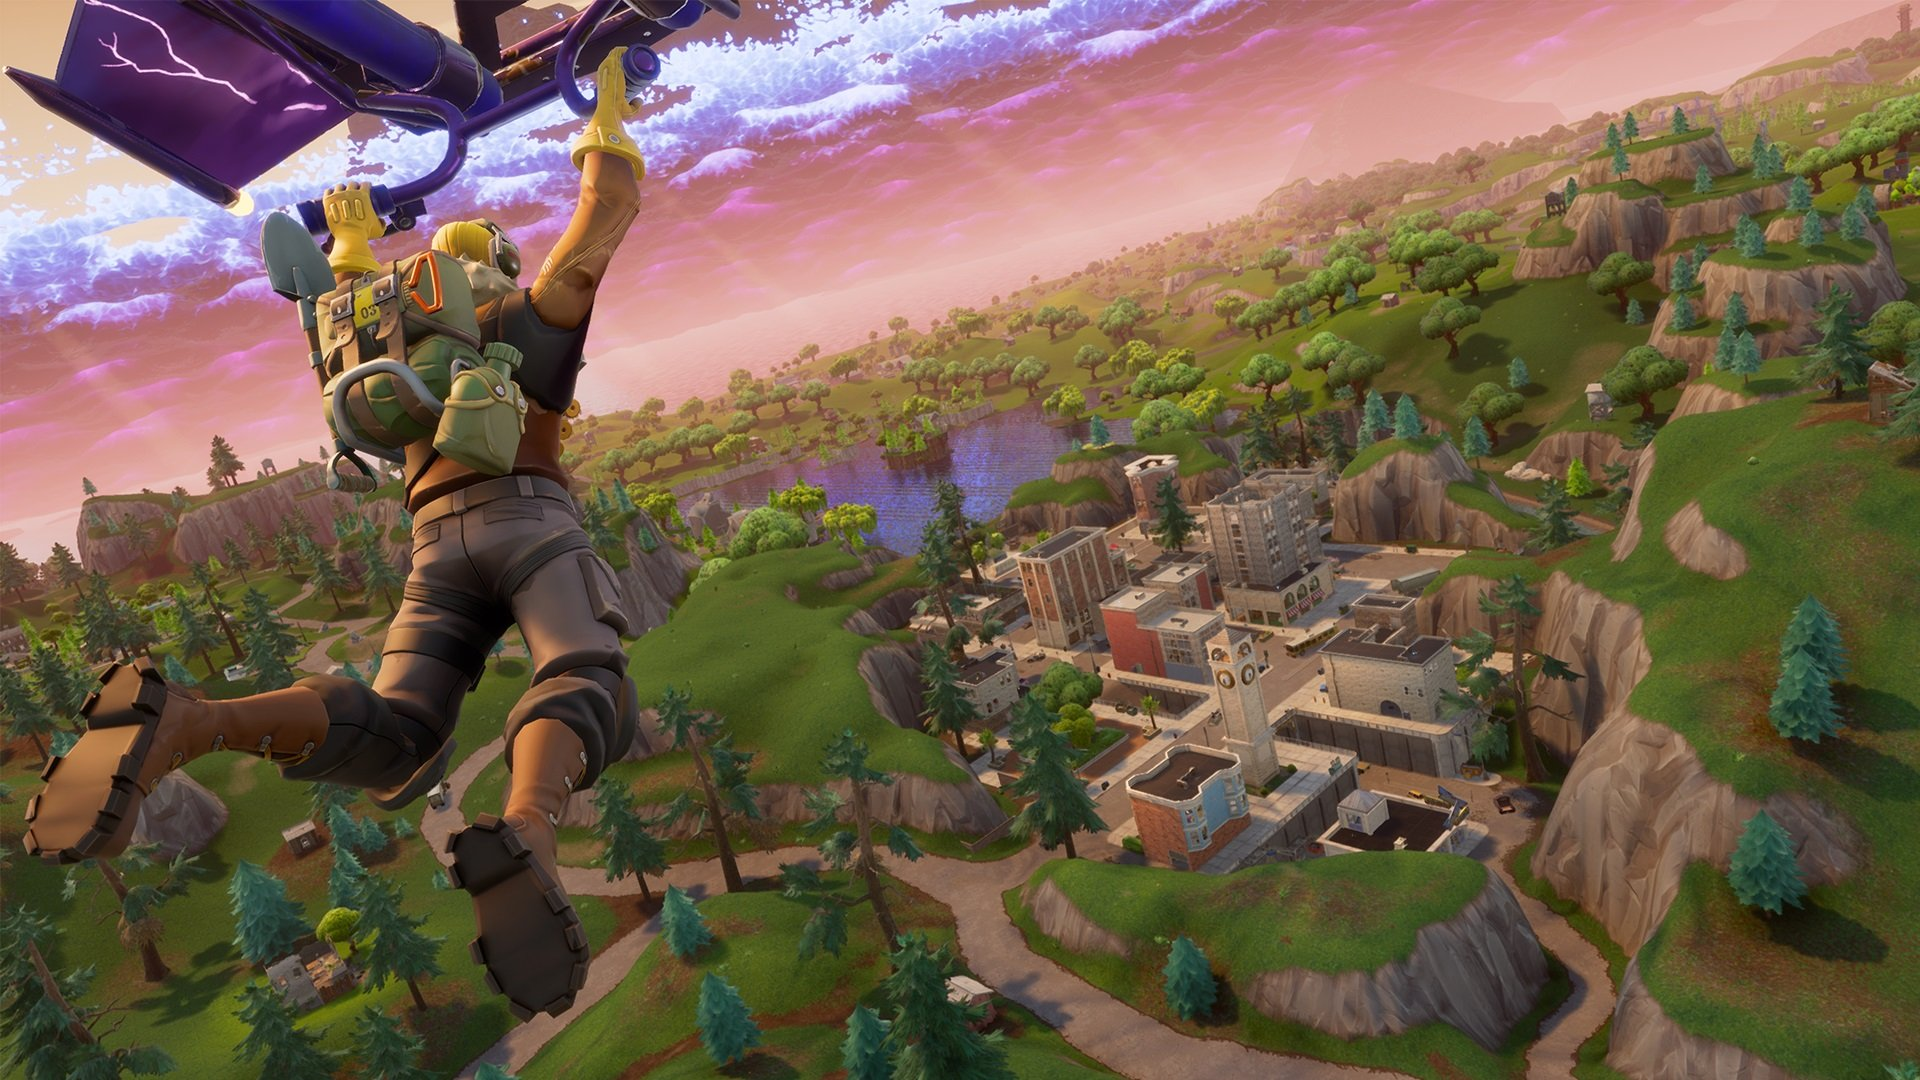 Fortnite was downloaded to Nintendo Switch two million times in 24 hours